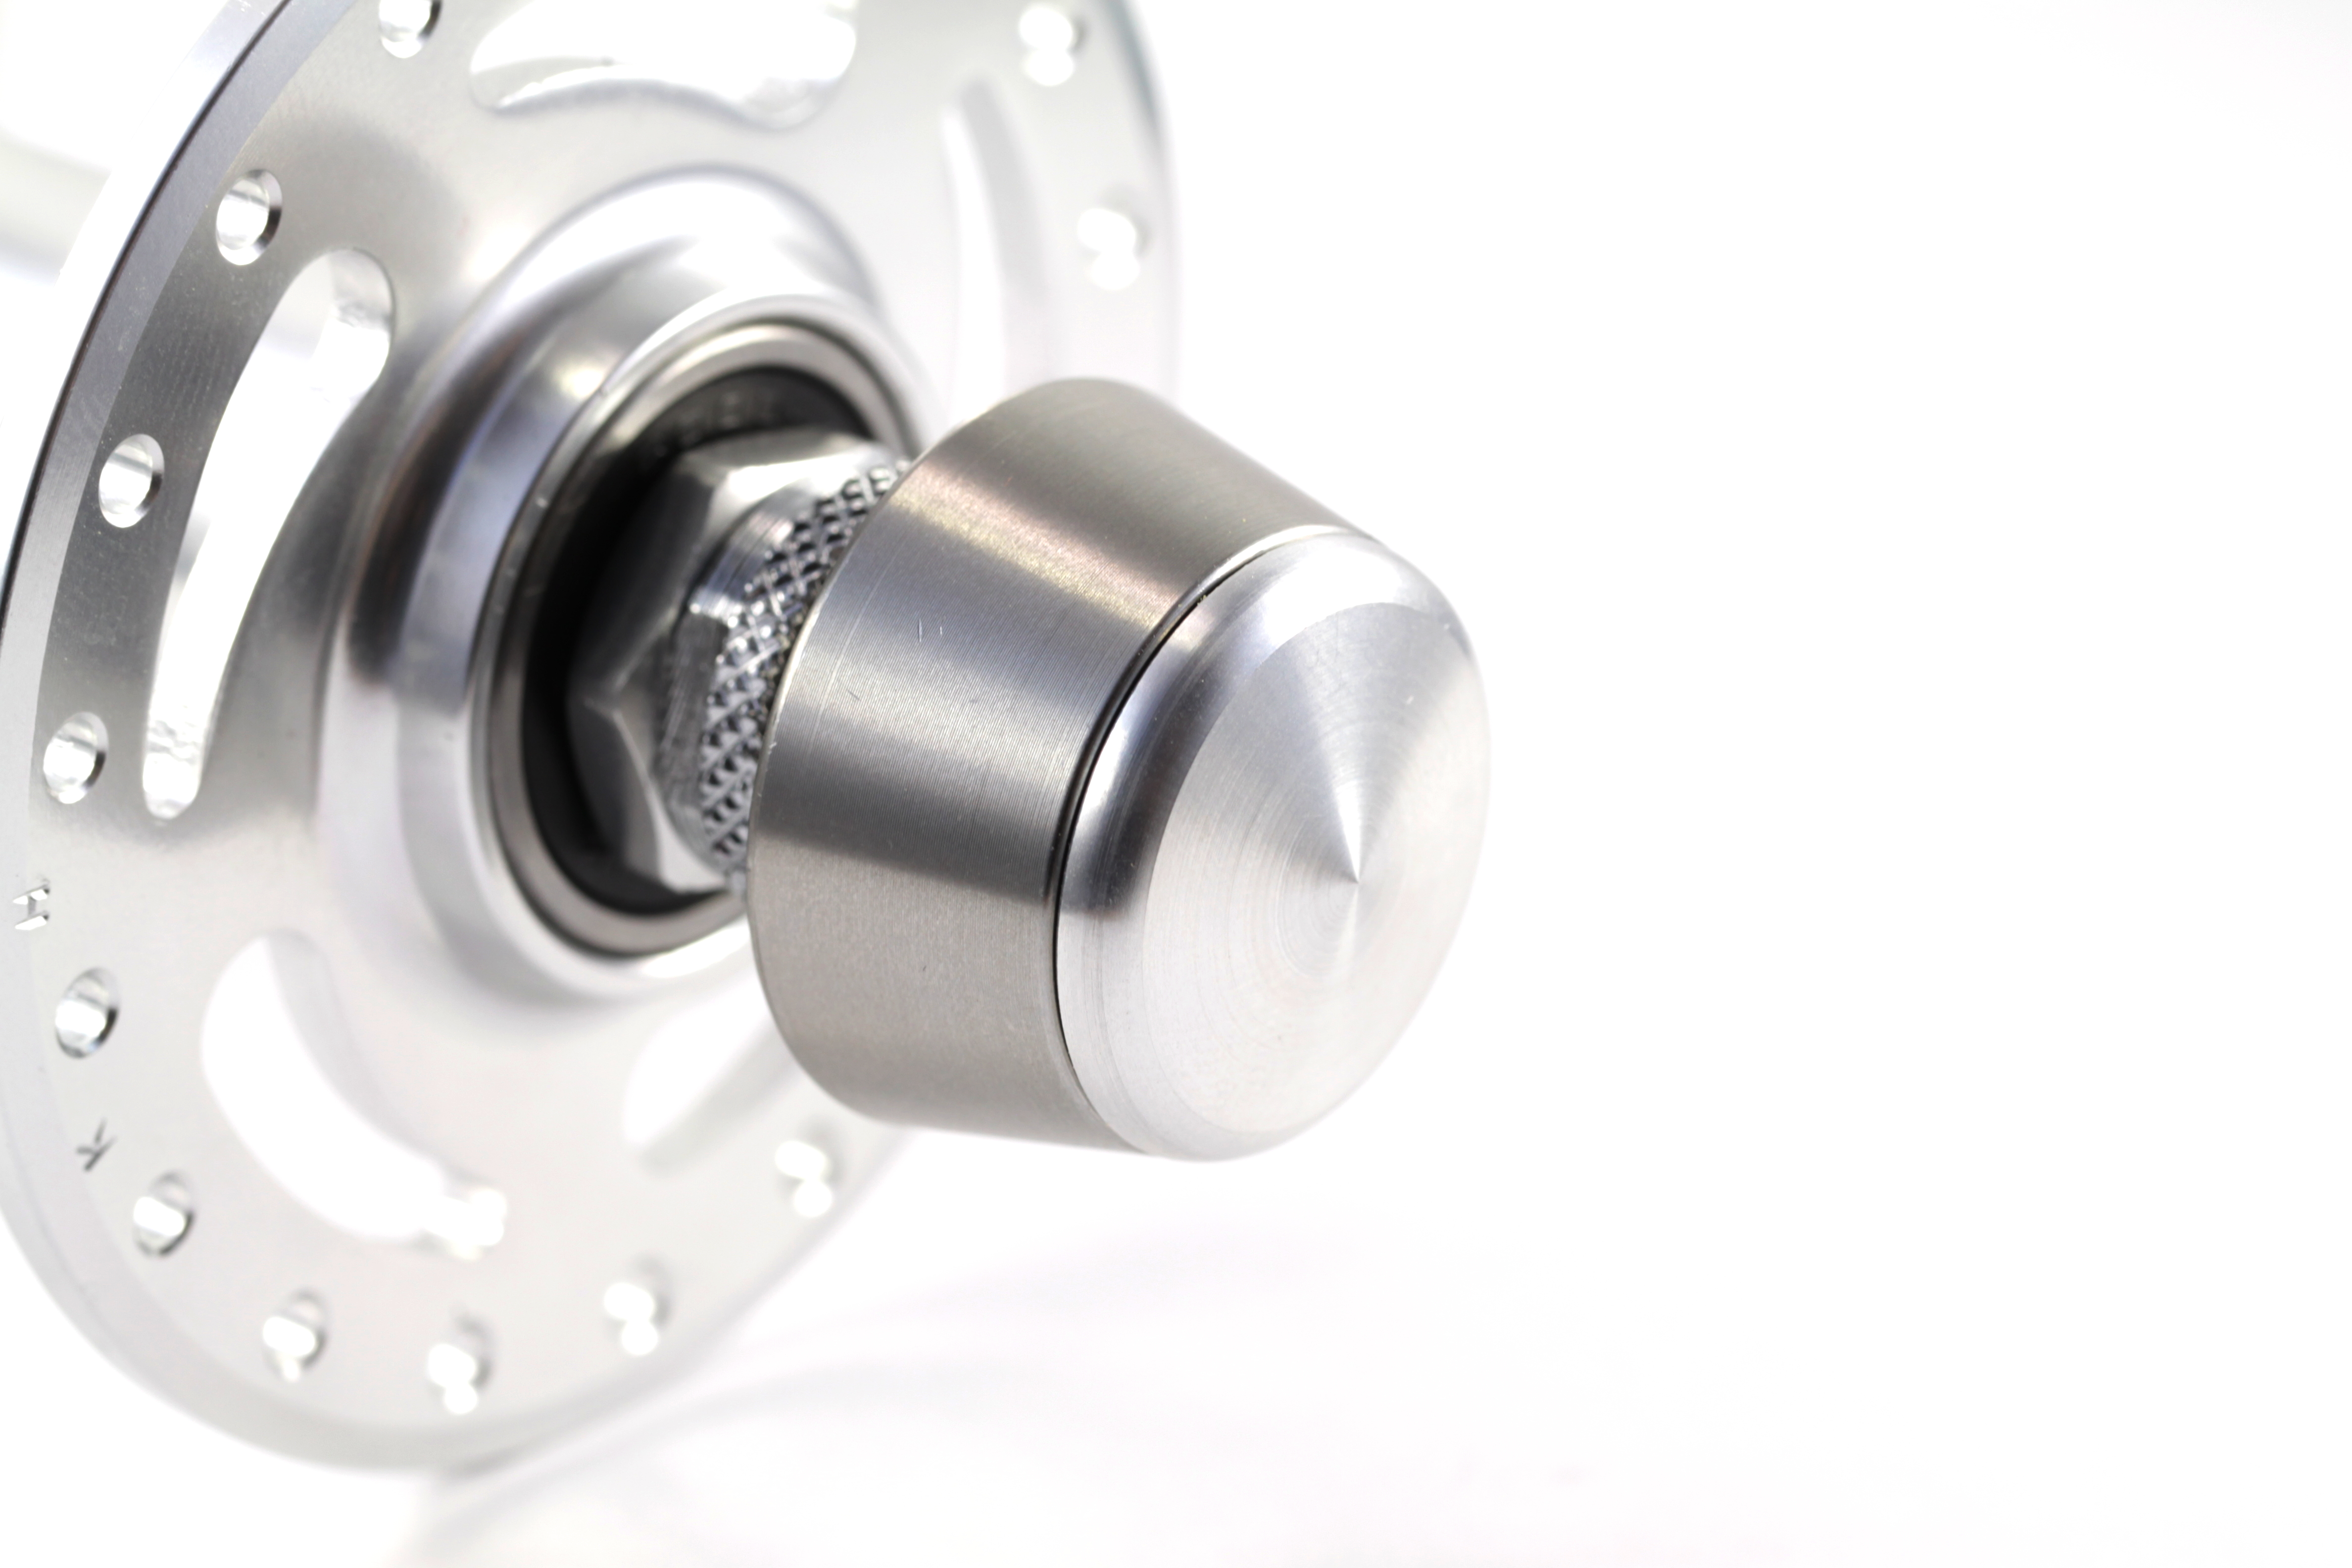 Pitlock Solid-axle